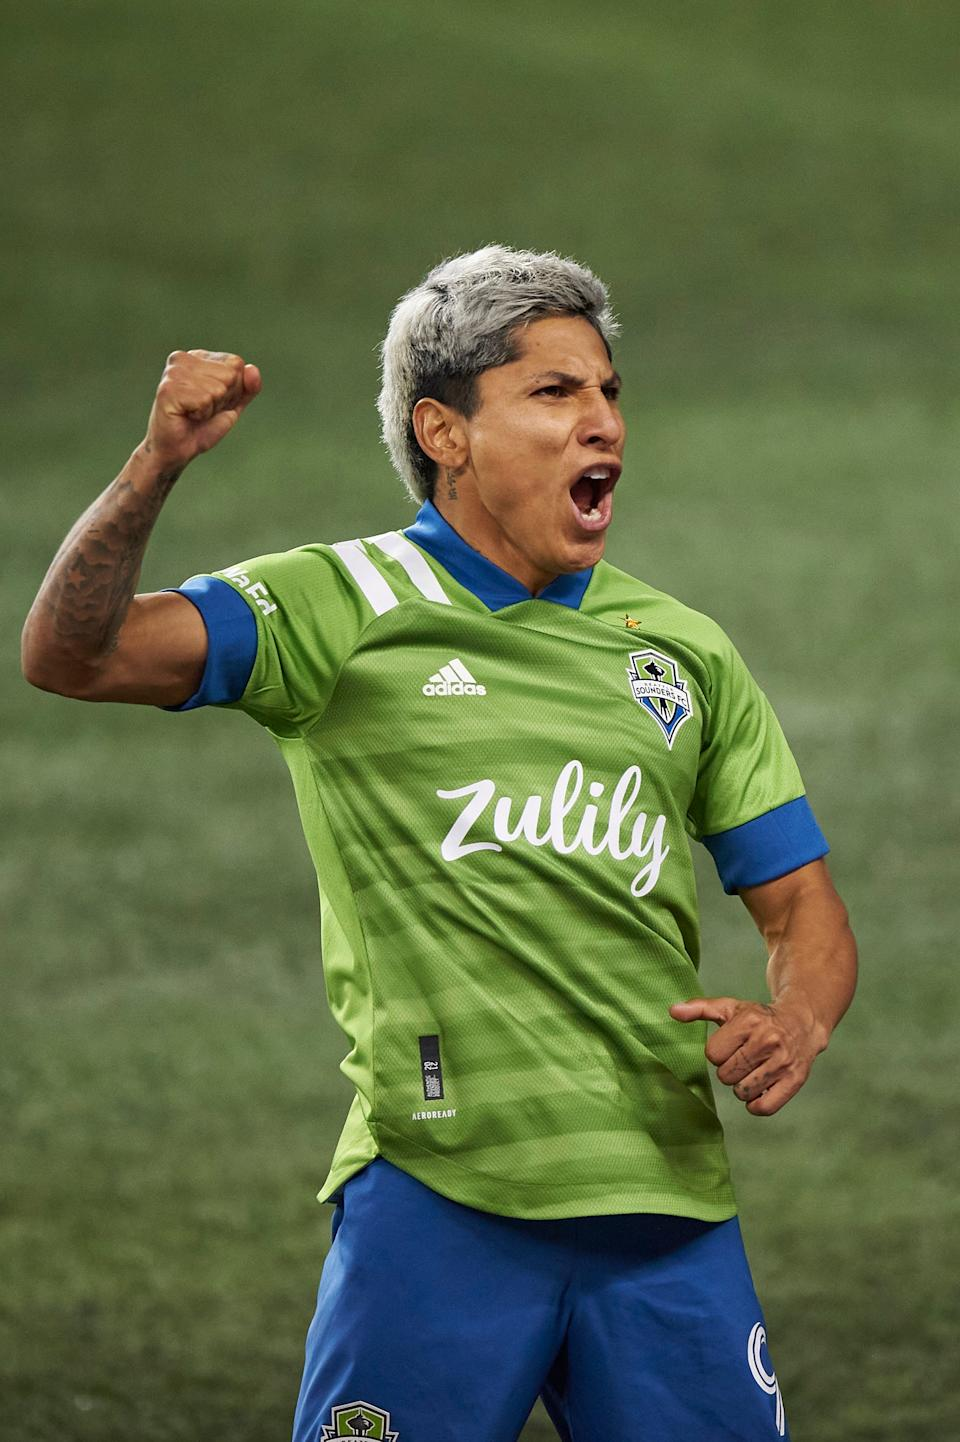 Raul Ruidiaz celebrates his game-tying goal against Minnesota United in the Western Conference final.